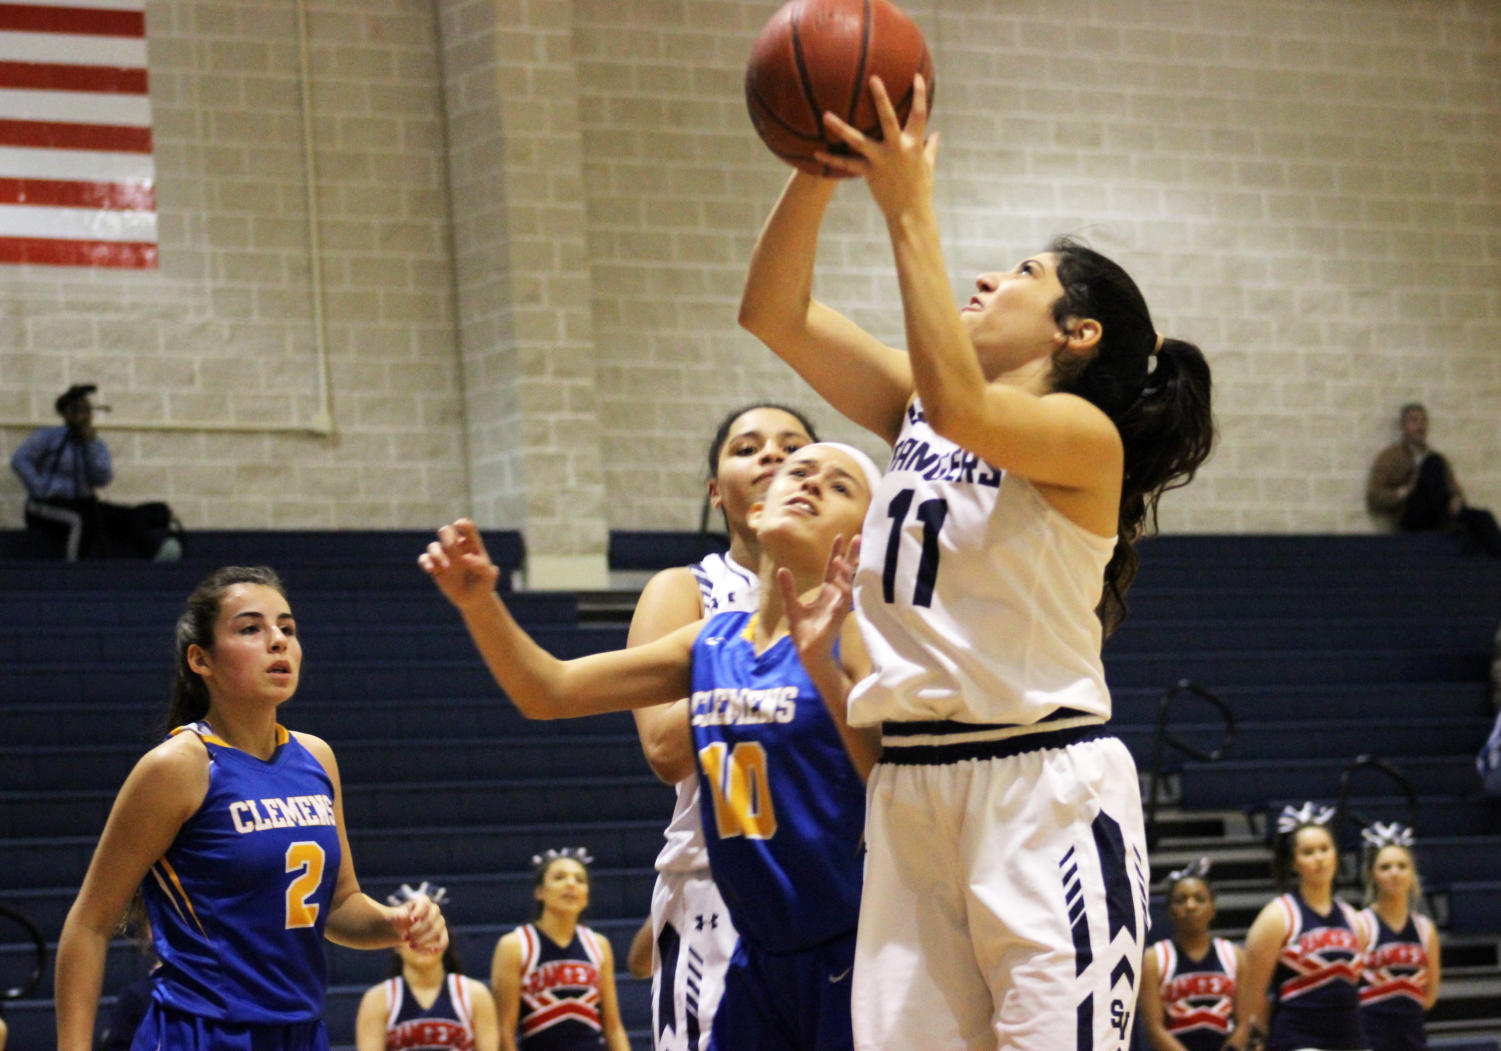 Senior Alyssa Marin goes up for the layup in a game against Clemens last season.